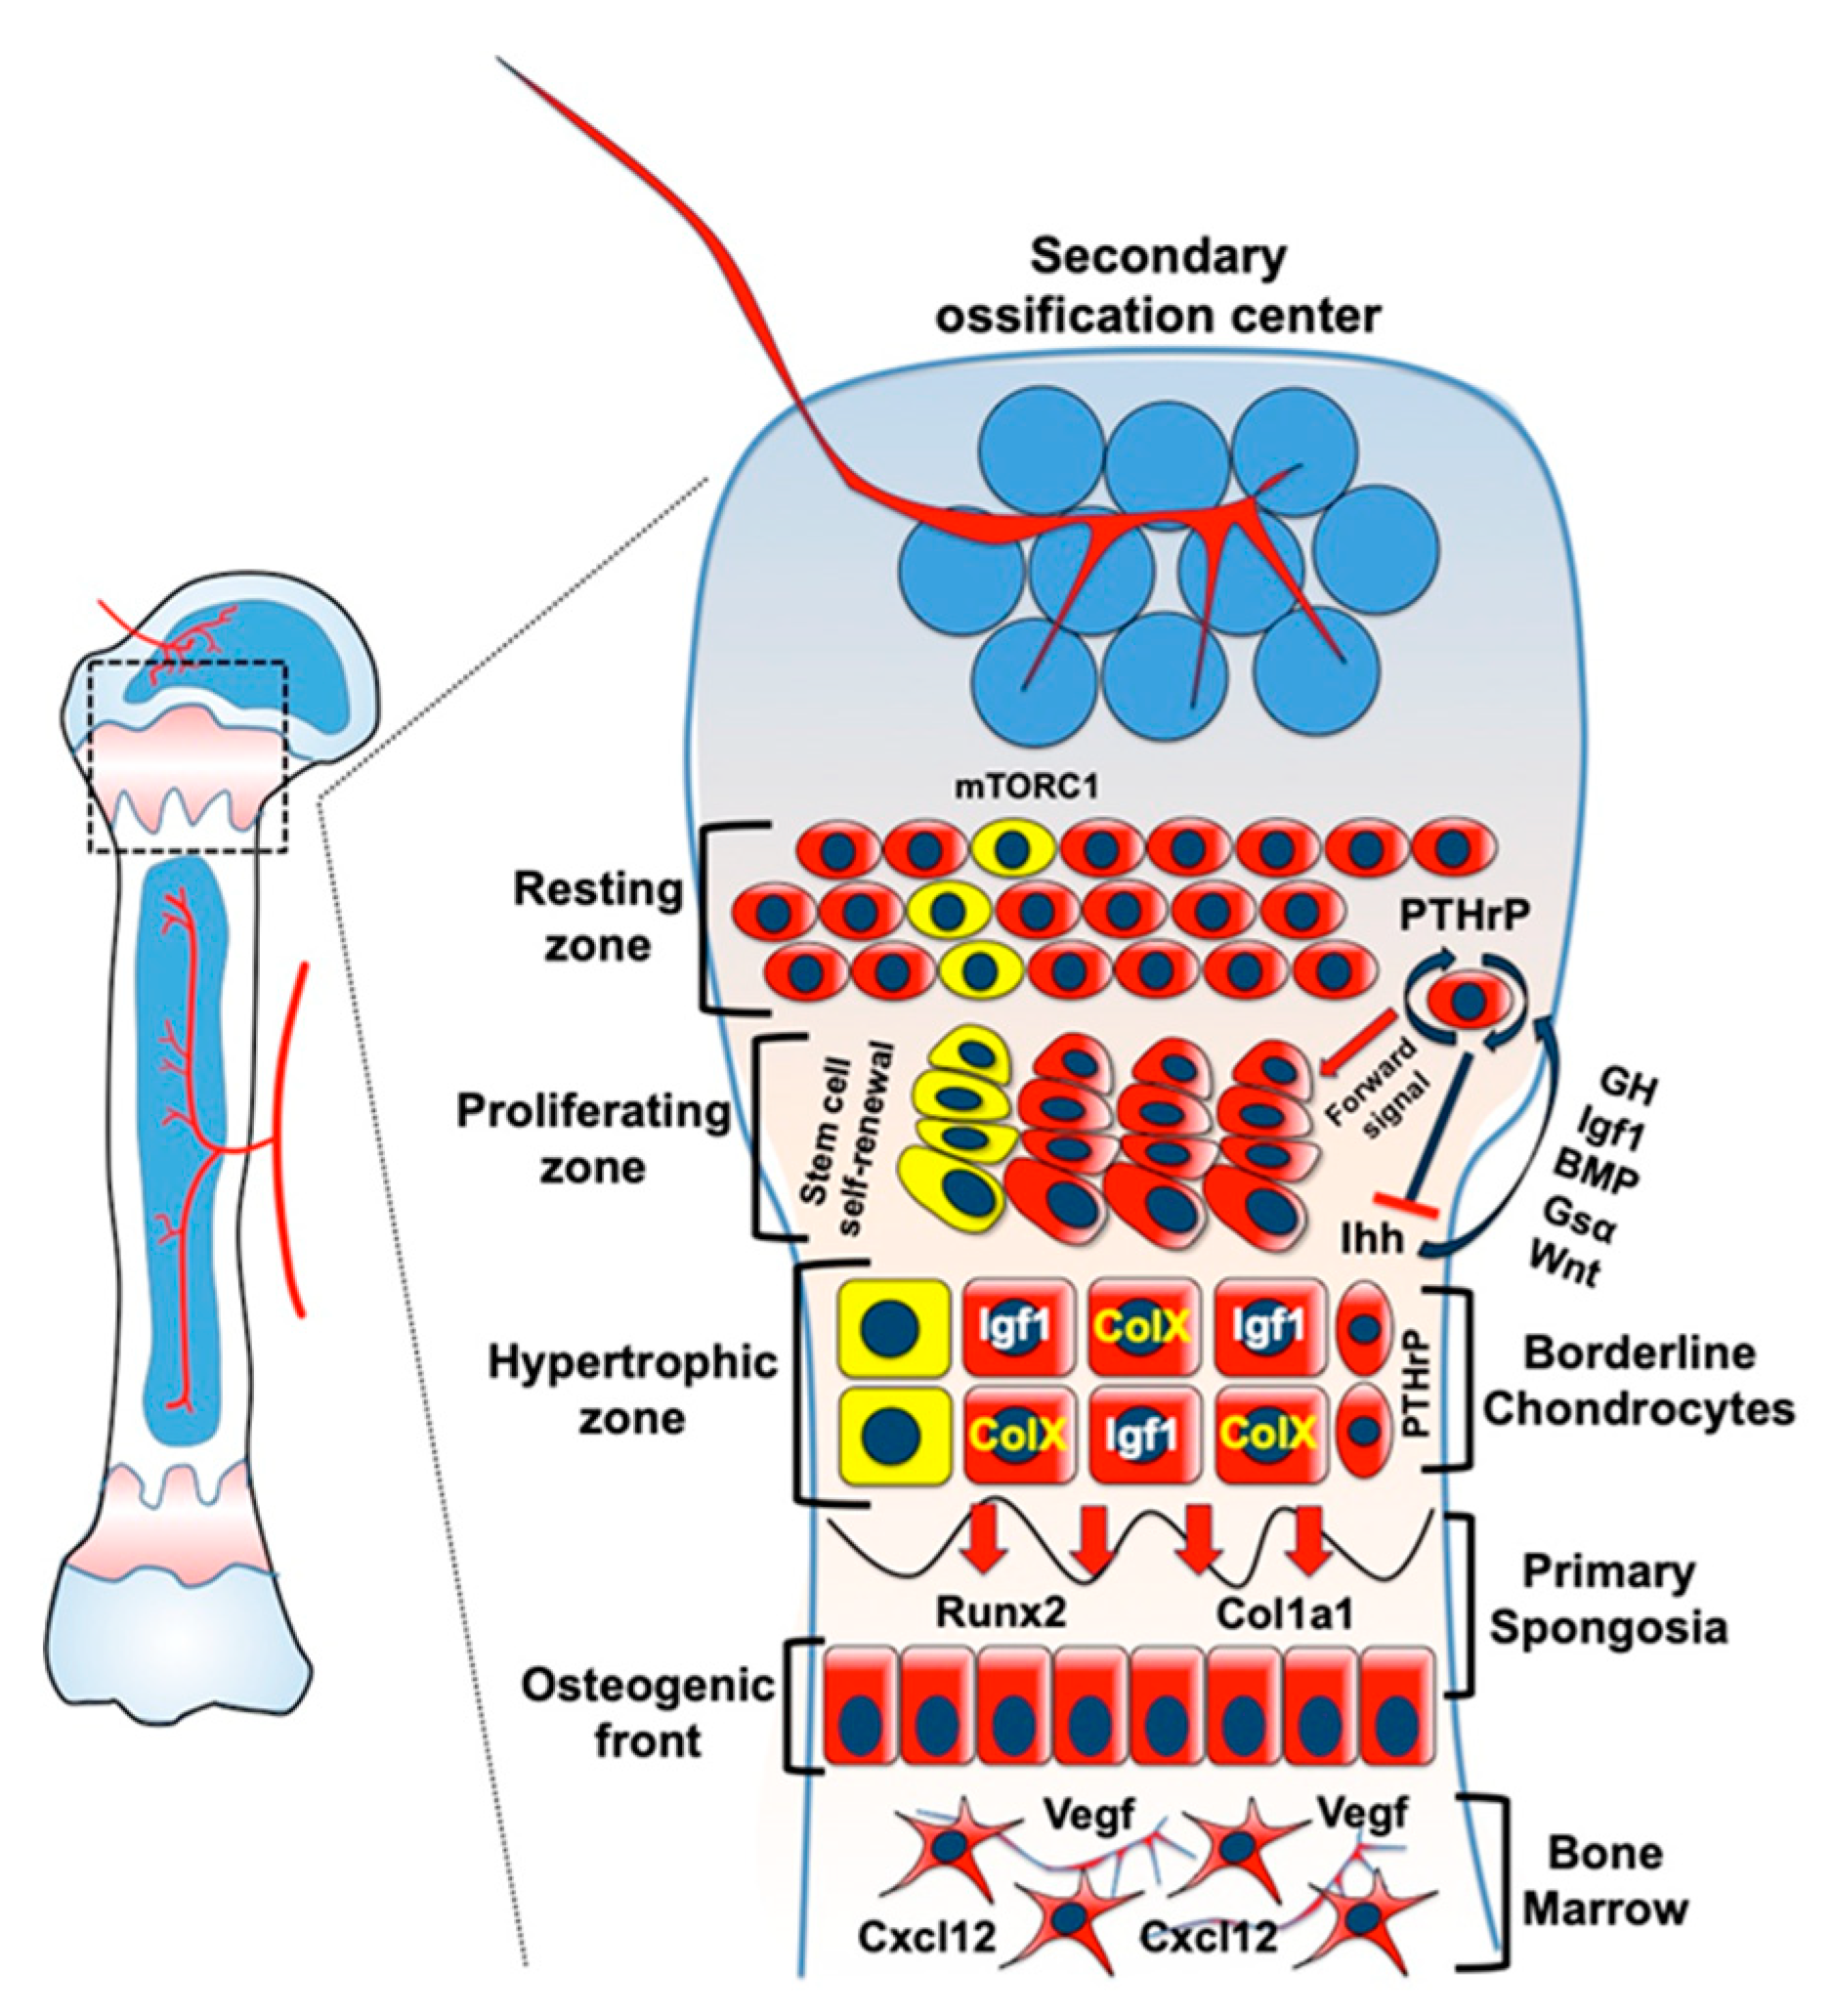 Ijms Free Full Text Growth Plate Chondrocytes Skeletal Development Growth And Beyond Html An example of a synchondrosis joint is the first sternocostal joint (where the first rib meets the manubrium). growth plate chondrocytes